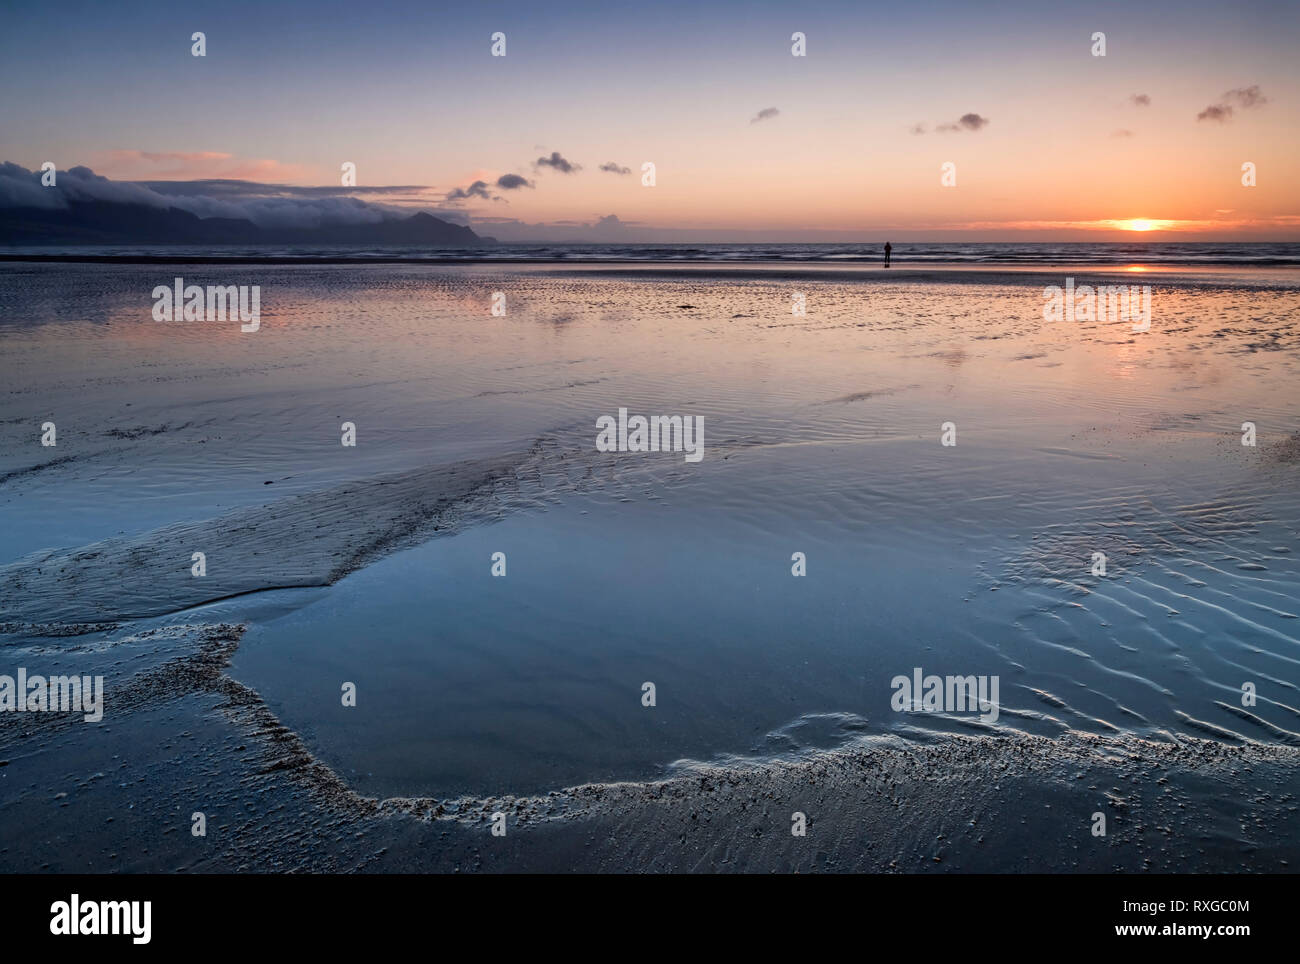 Lone Walker at sunset, Dinas Dinlle Beach, Dinas Dinlle, Gwynedd, North Wales, UK MODEL RELEASED Stock Photo